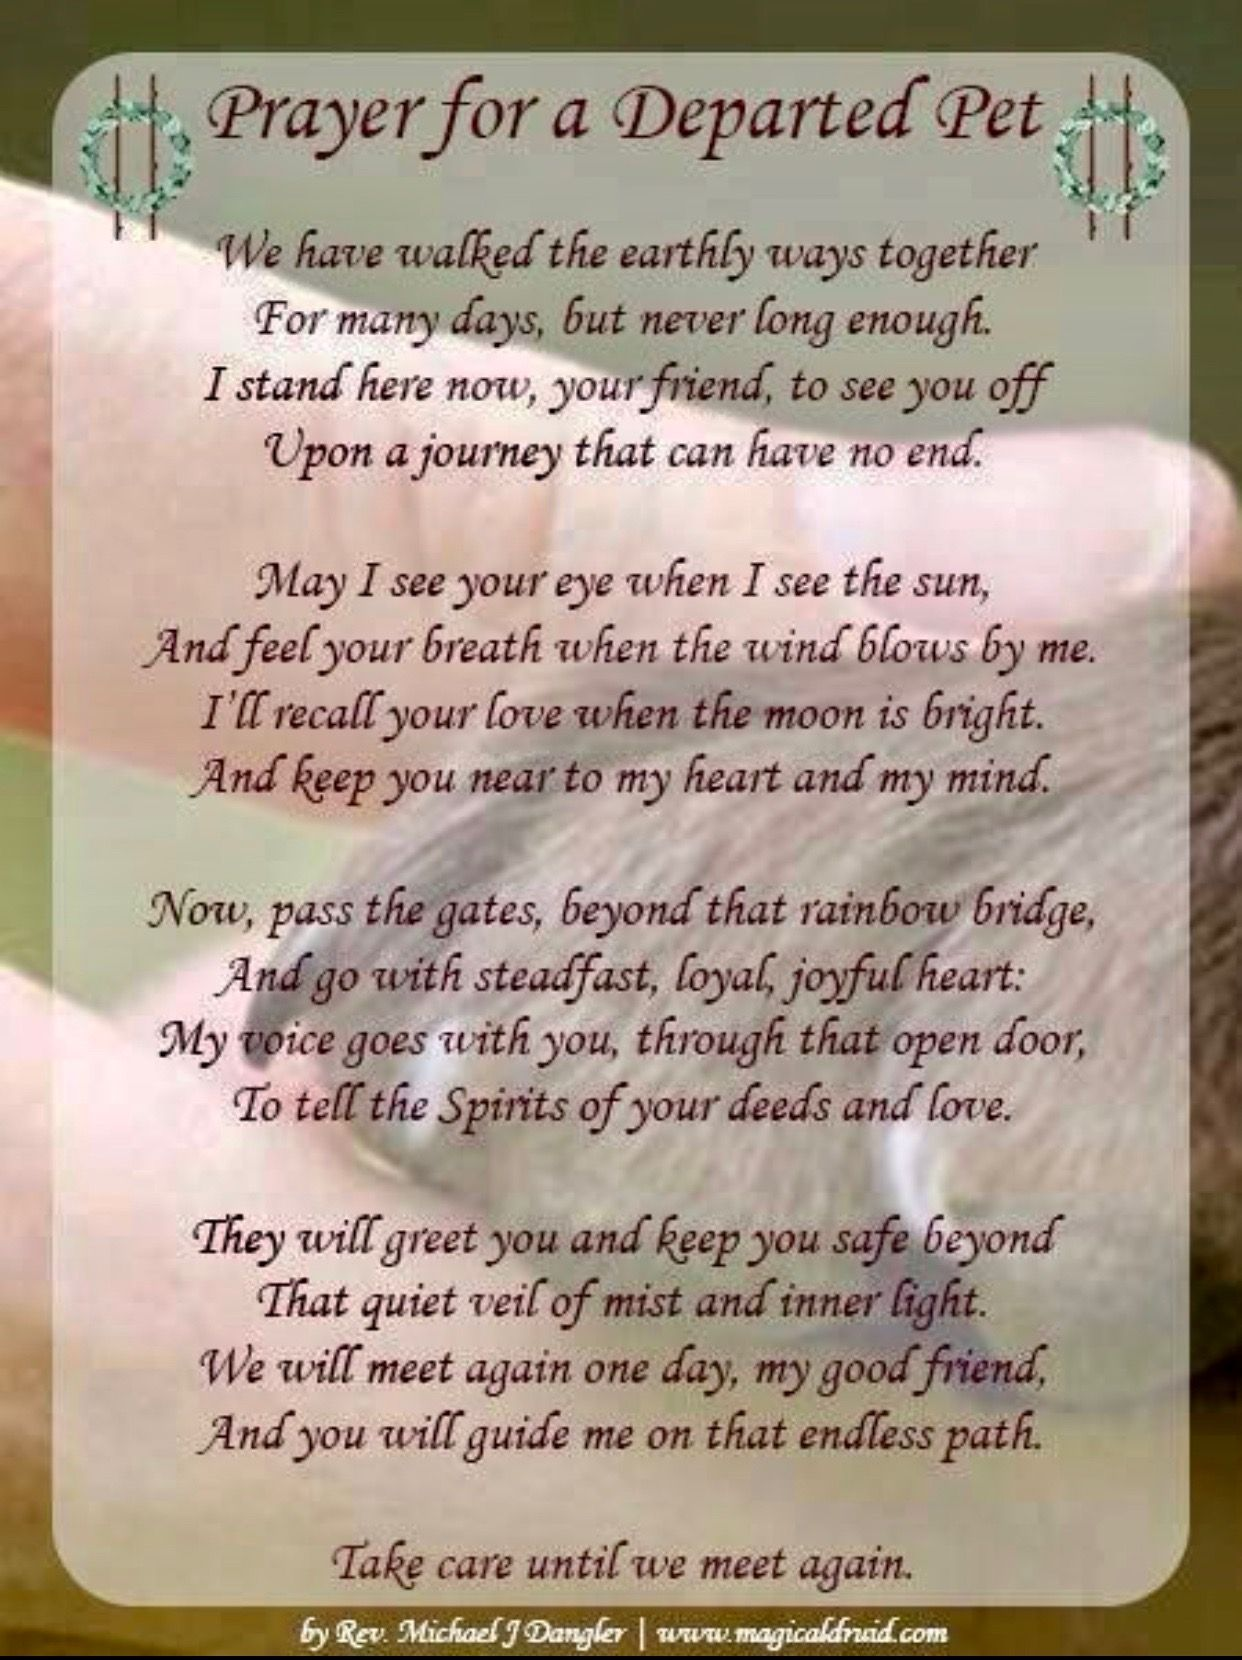 Pin by Paula Pogulis on Paws Dog poems, Pet loss grief